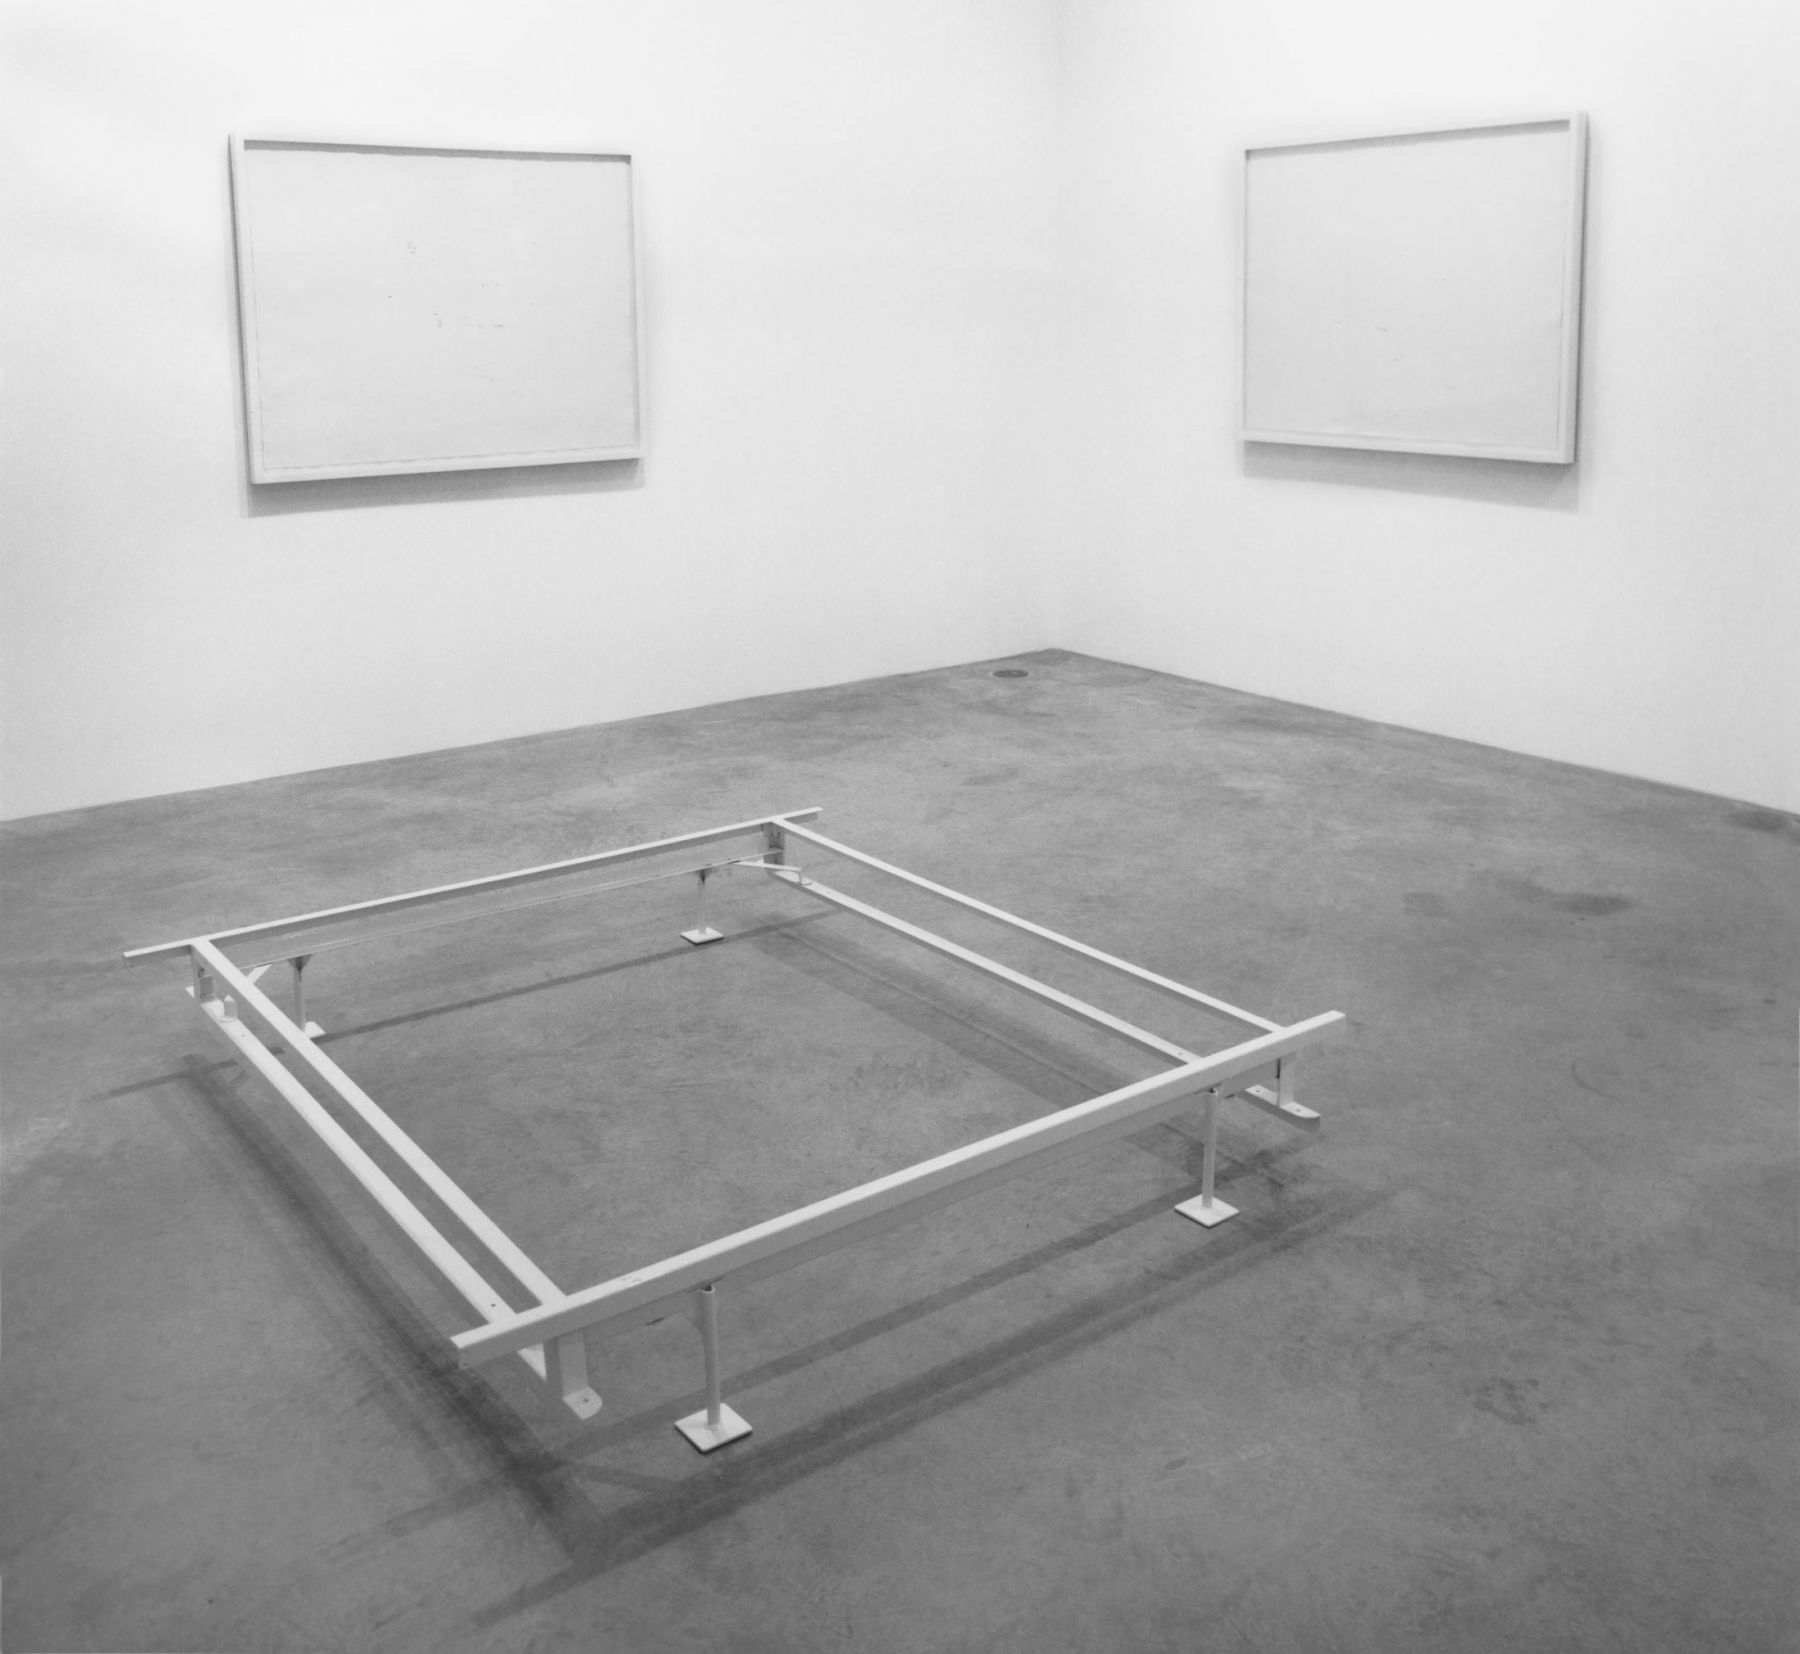 Sarah Seager, Installation view